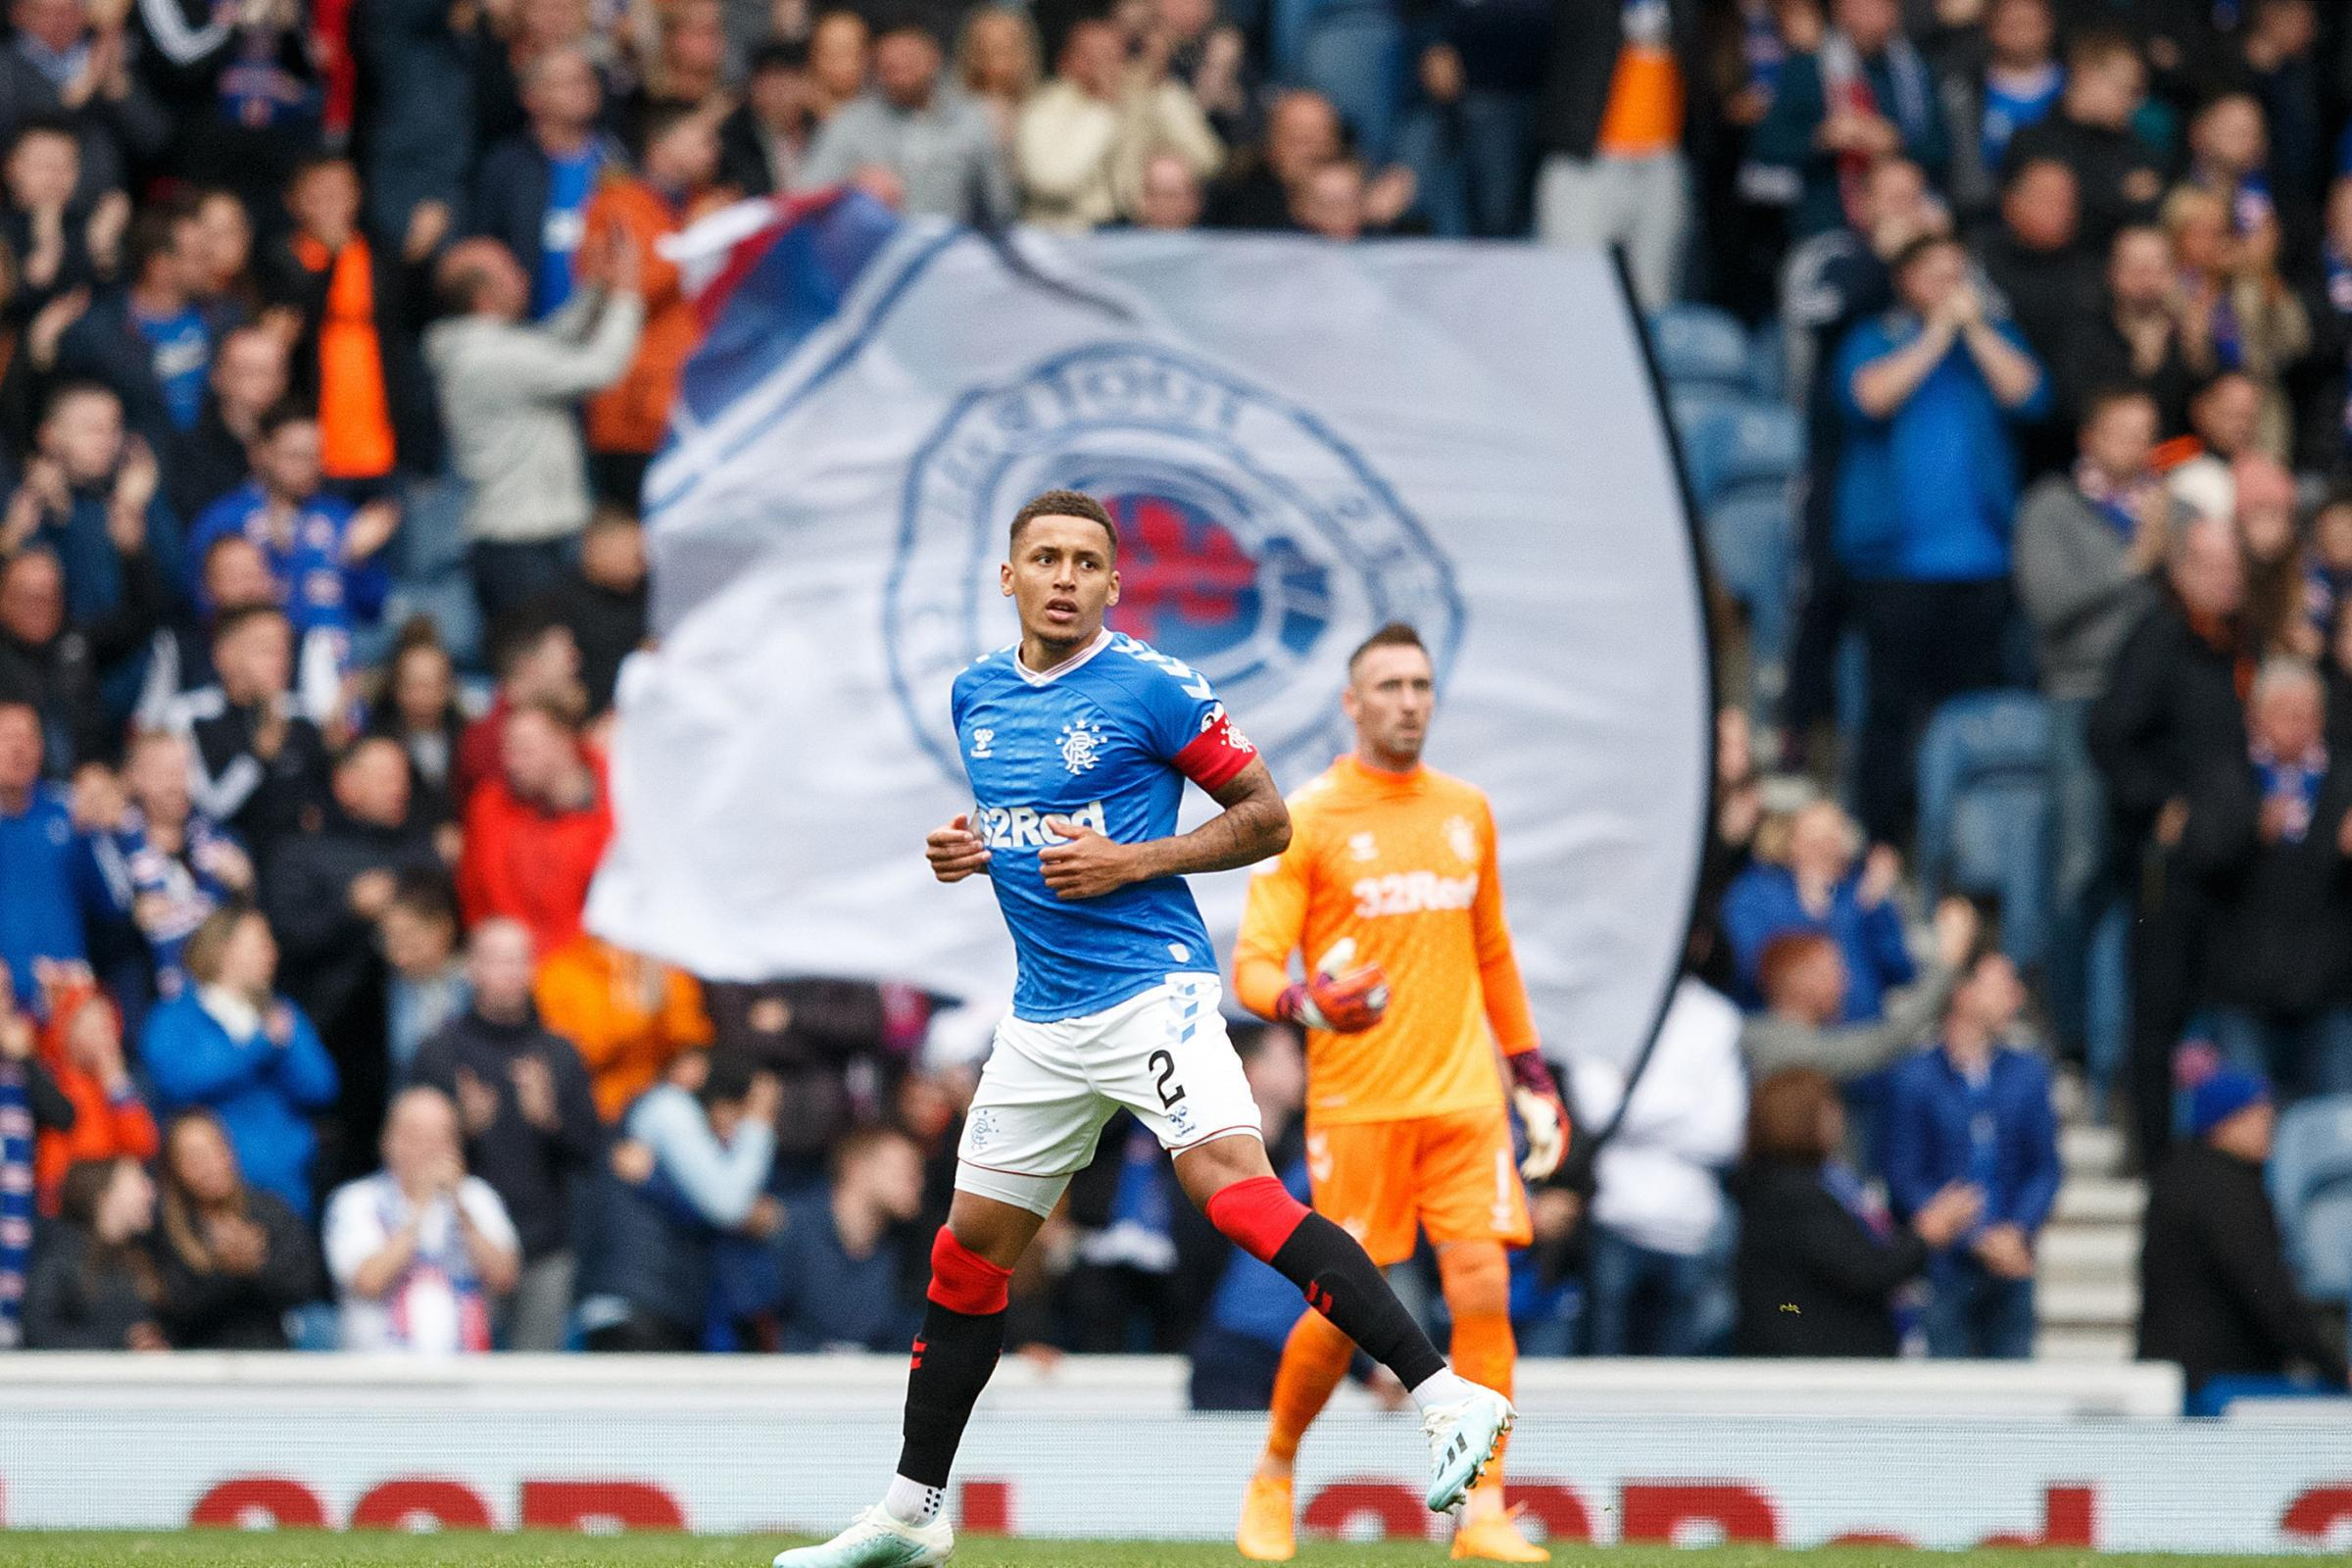 Rangers 3-1 Livingston: Steven Gerrard's side come from behind to get back to winning ways at Ibrox